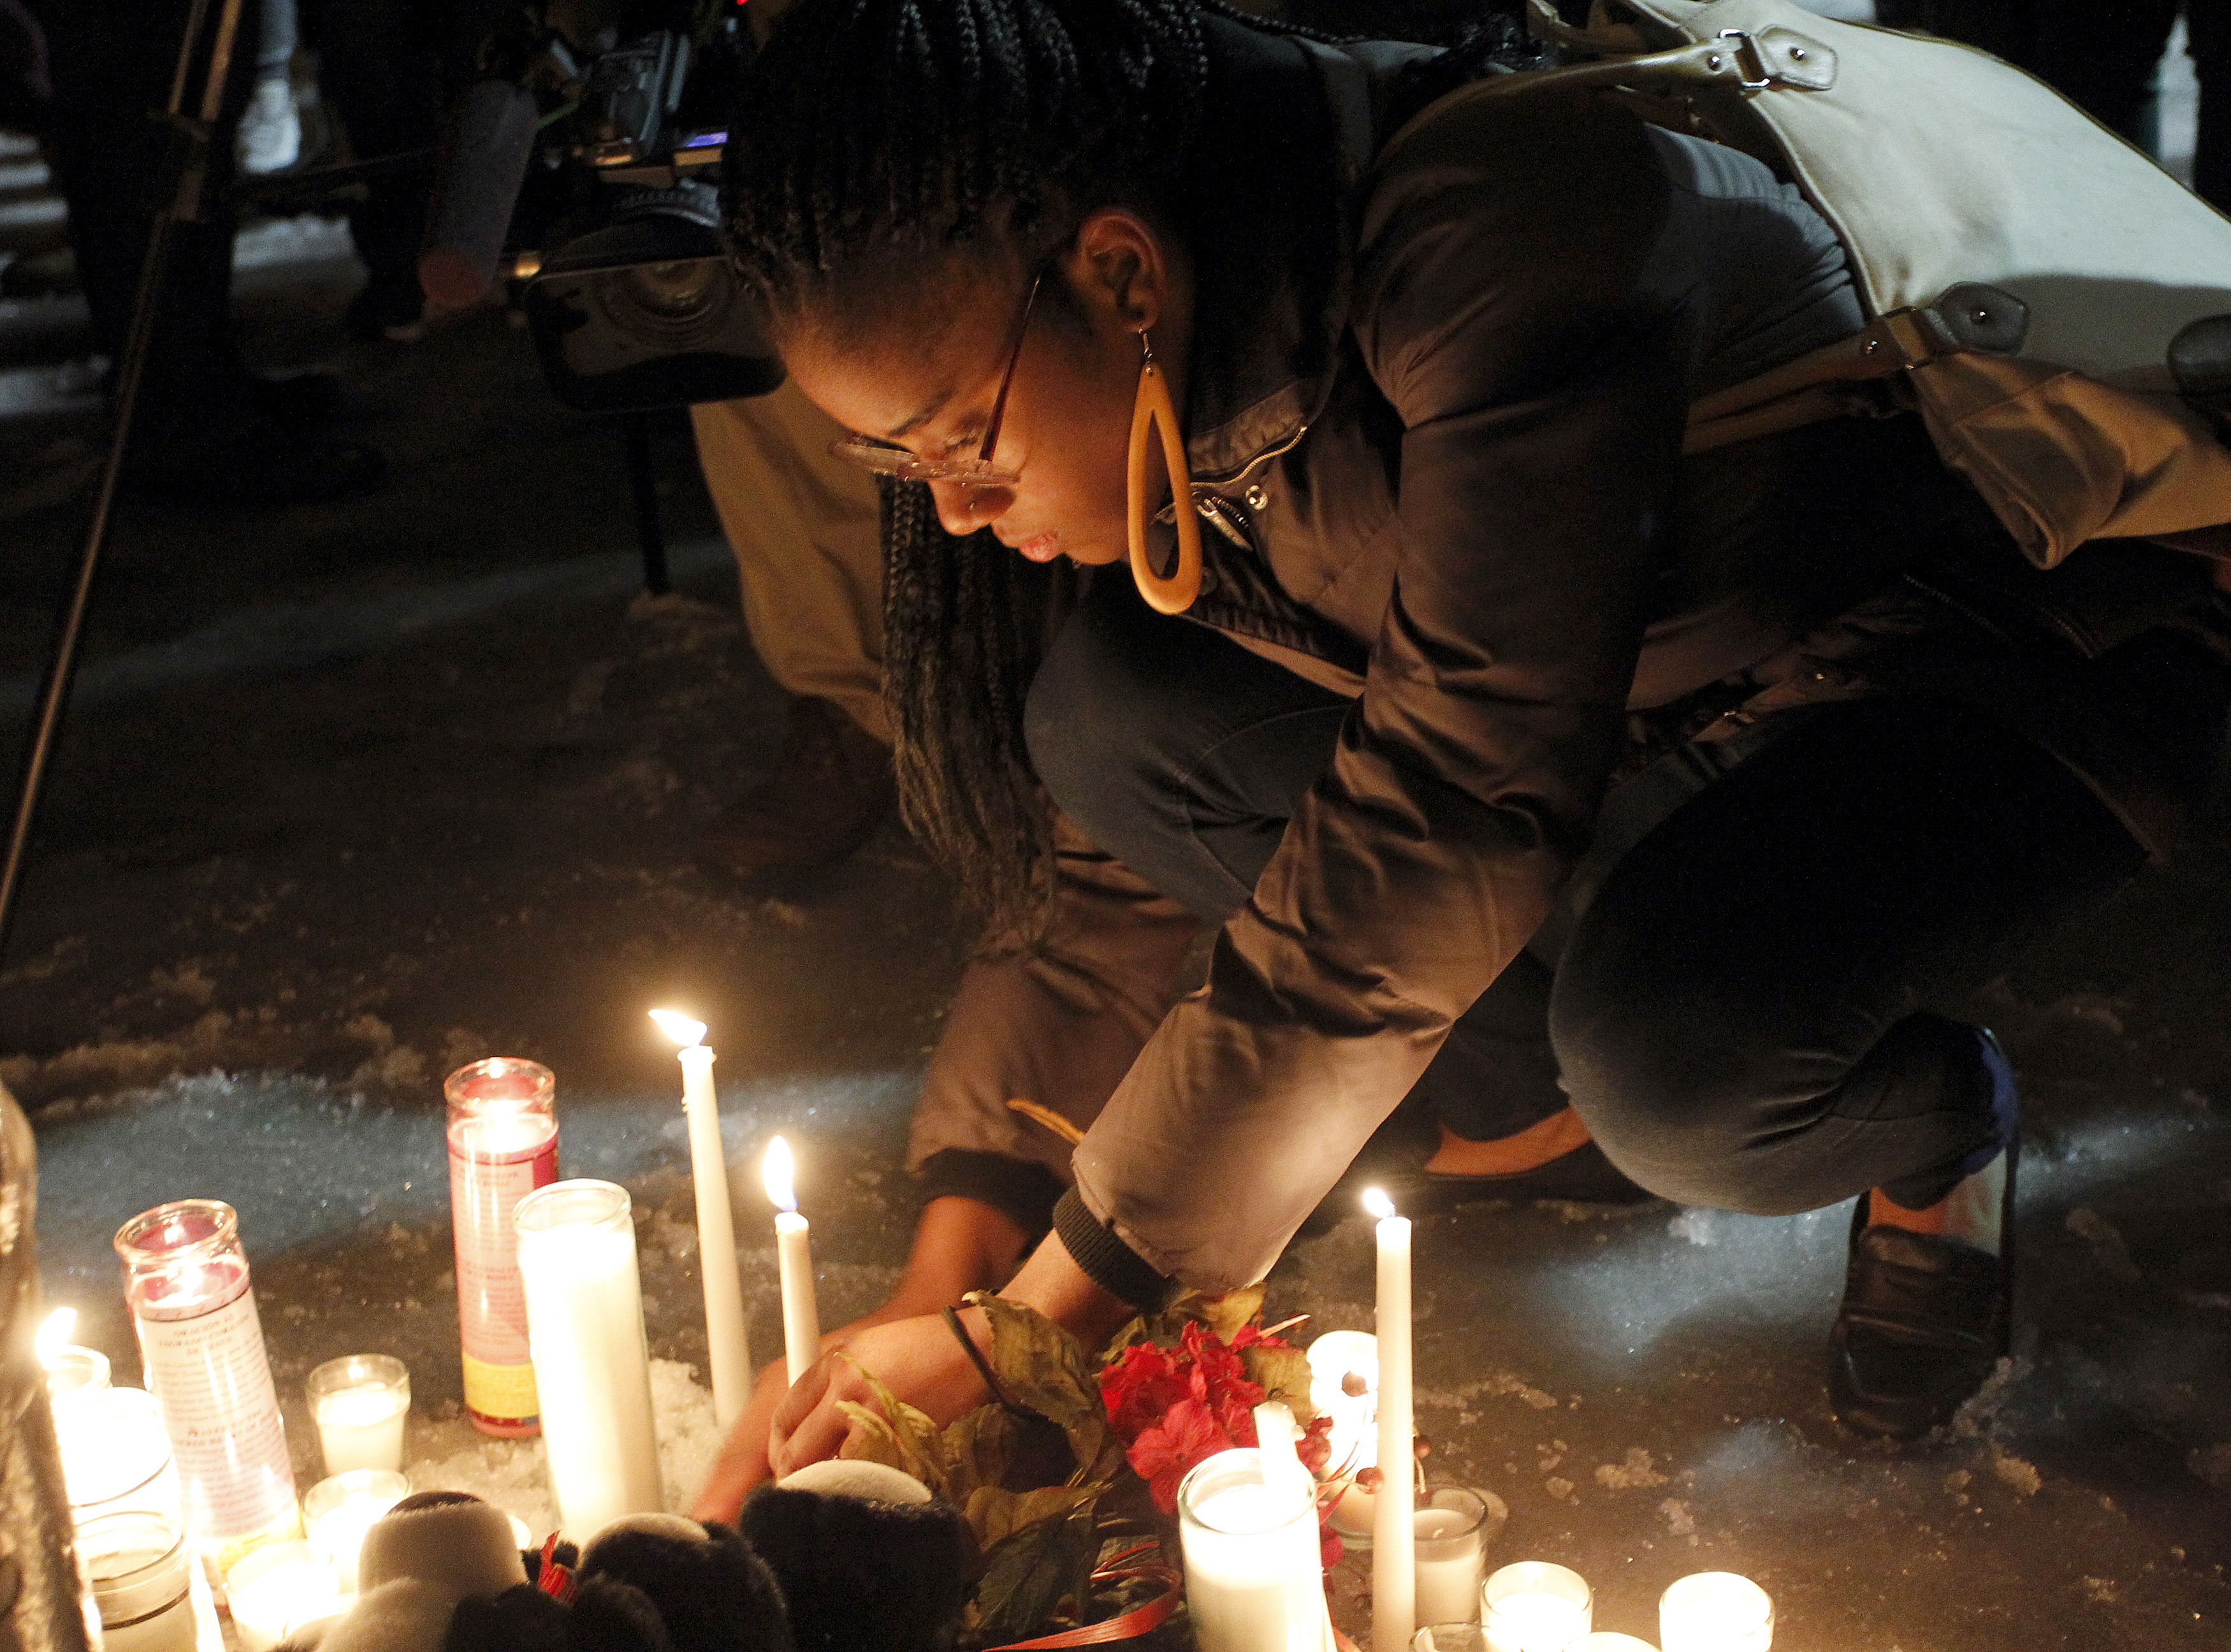 People place candles in a make-shift memorial as they attend a vigil in honor of Bettie Jones, a mother of five and college student Quintonio LeGrier, at Gwendolyn Brooks Academy in Chicago, Illinois, Dec. 29, 2015.